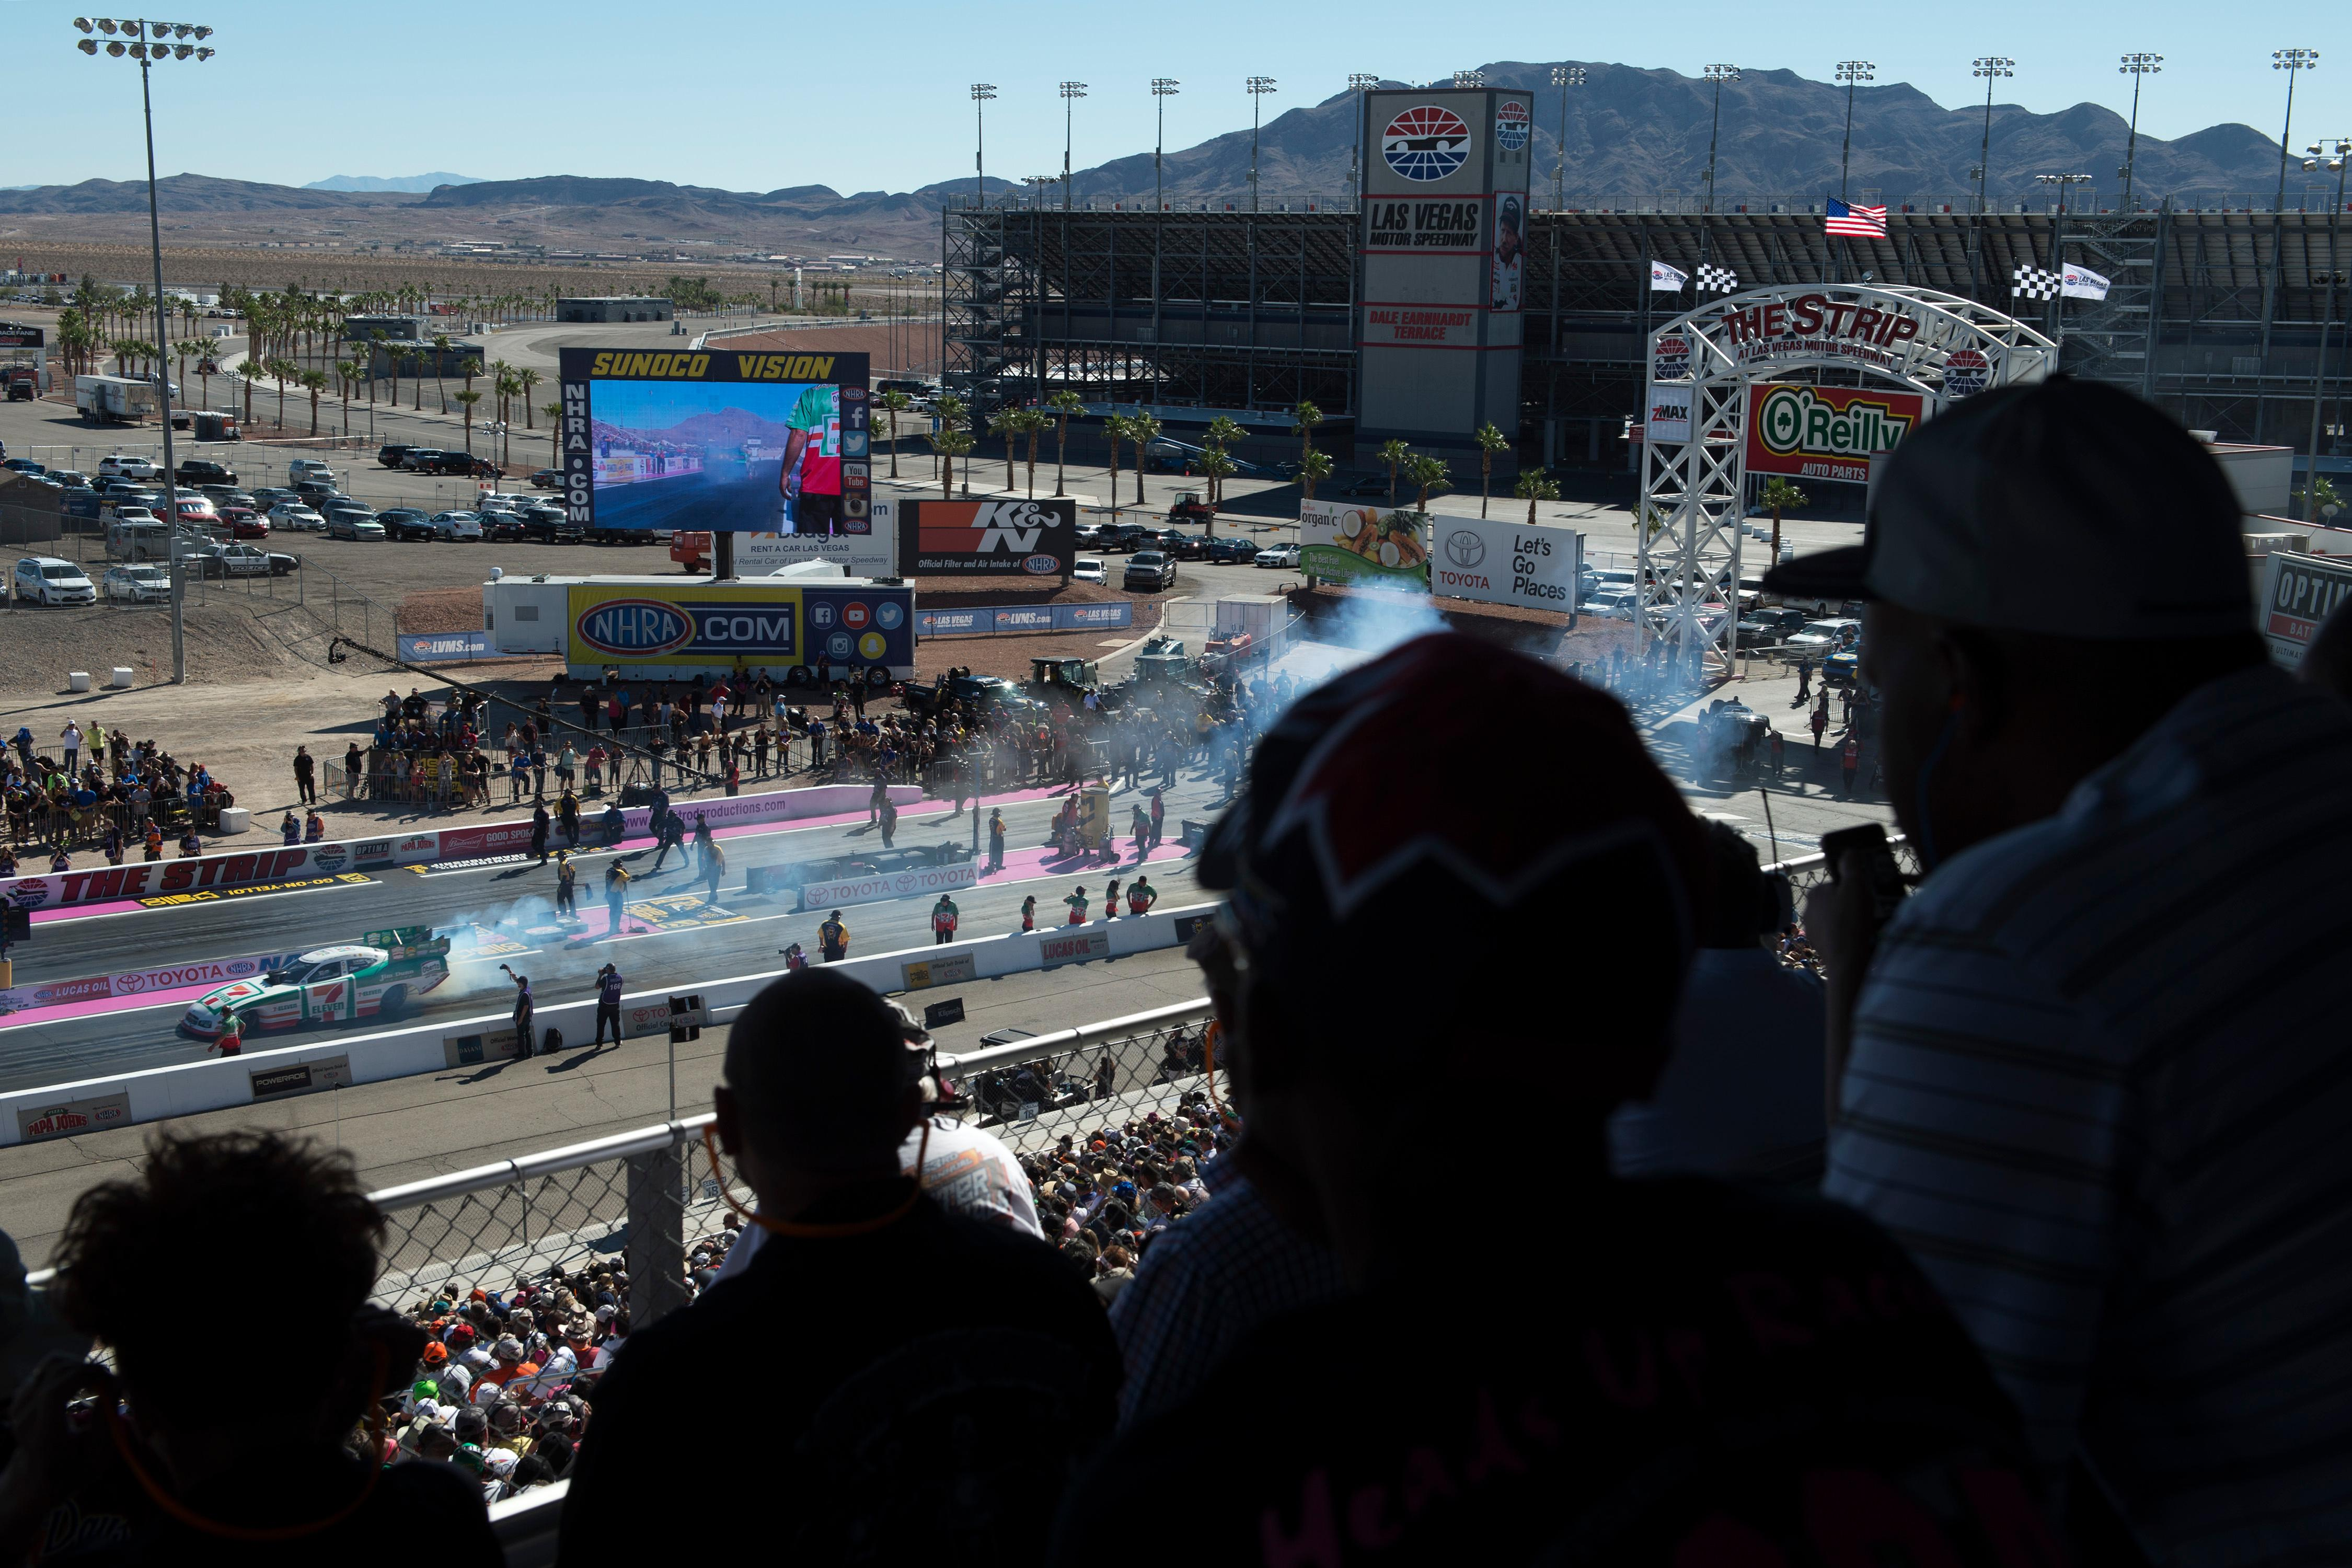 Fans watch Funny Car driver Jim Campbell smoke his tires before a run during the NHRA Toyota Nationals Sunday, October 29, 2017, at The Strip at the Las Vegas Motor Speedway. CREDIT: Sam Morris/Las Vegas News Bureau